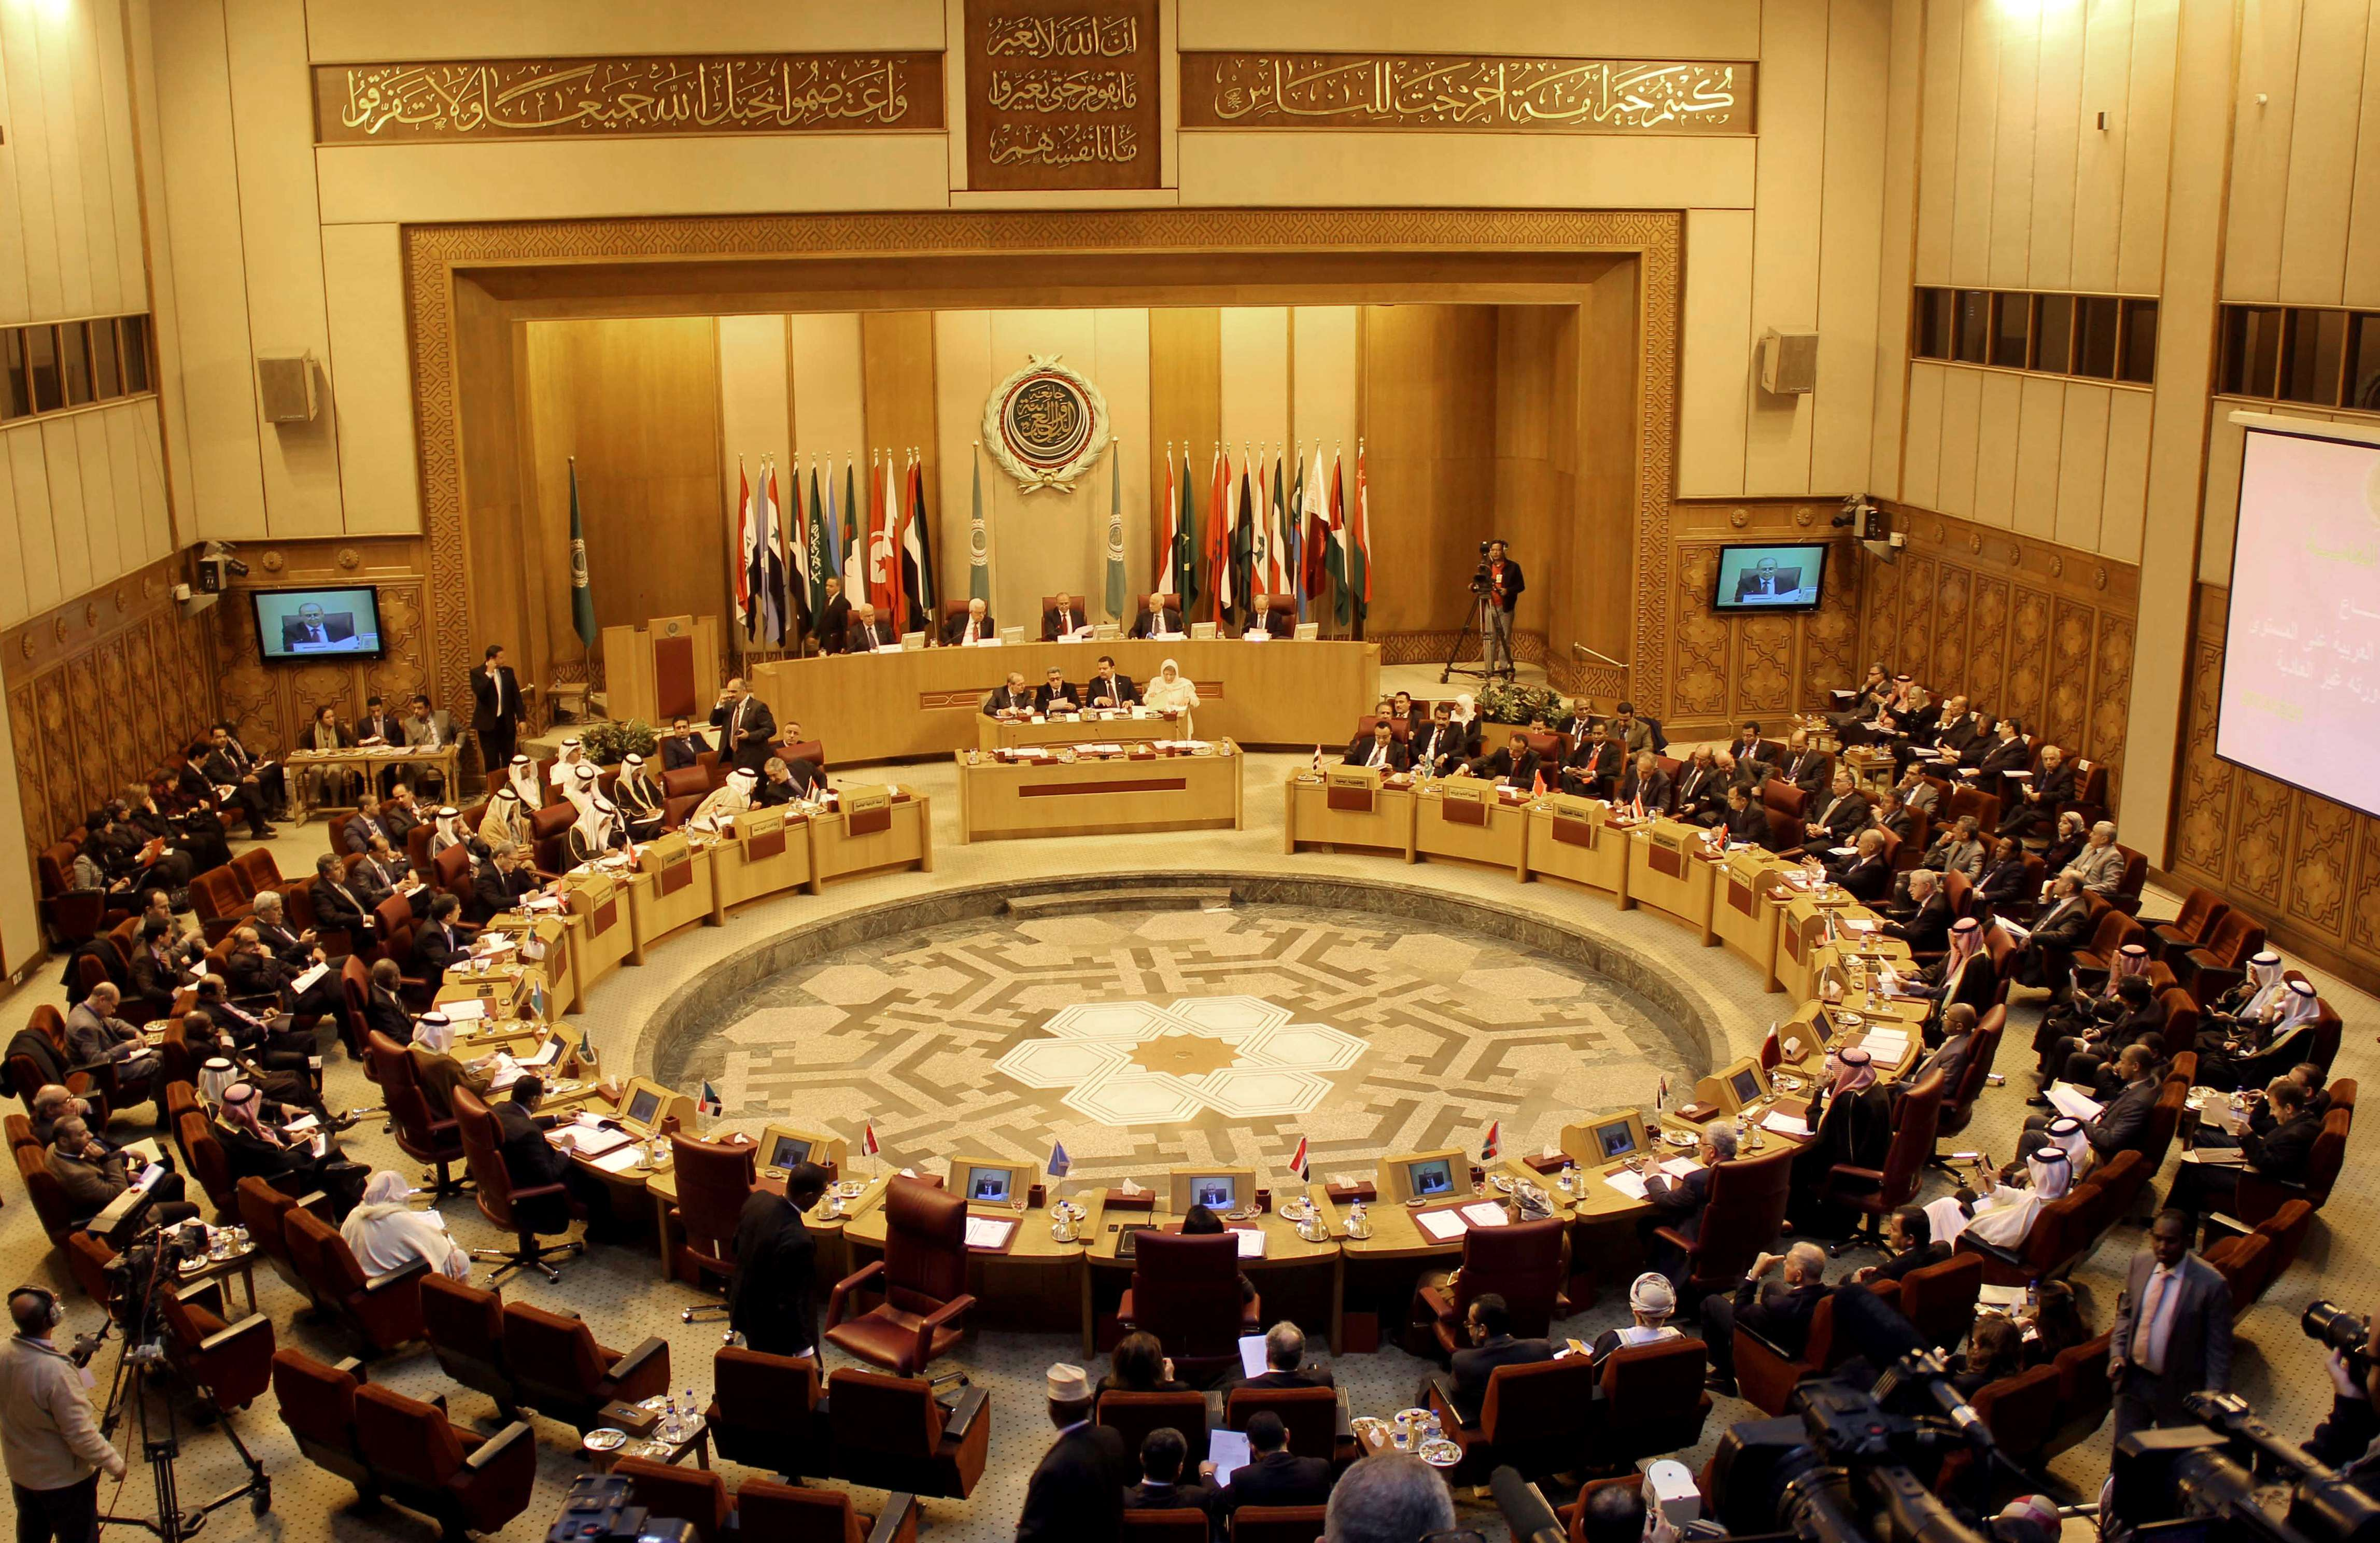 A general view shows the meeting of the Arab League Foreign ministers in the Egyptian capital Cairo on December 21, 2013. The meeting has been called at the request of Palestinian president Mahmud Abbas, League deputy secretary general Ahmed Ben Helli said, and aims to discuss troubled peace talks between the Palestinians and Israel.  (AFP PHOTO / HASSAN MOHAMED)